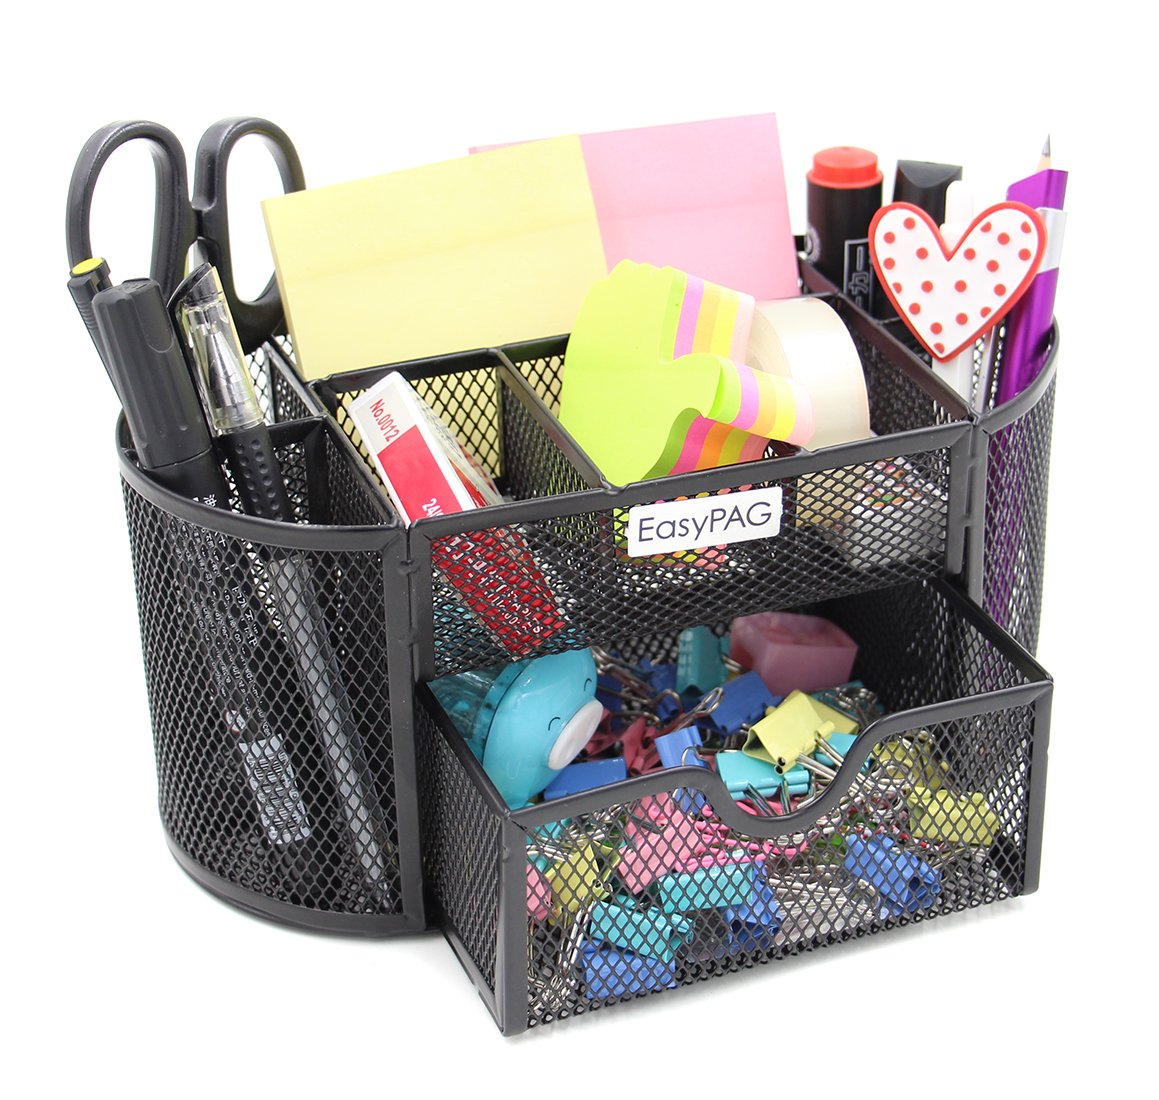 Amazon.com : EasyPAG Office Mesh Desk Organizer 9 Components Pencil Holder  Caddy With Drawer, Black : Office Products